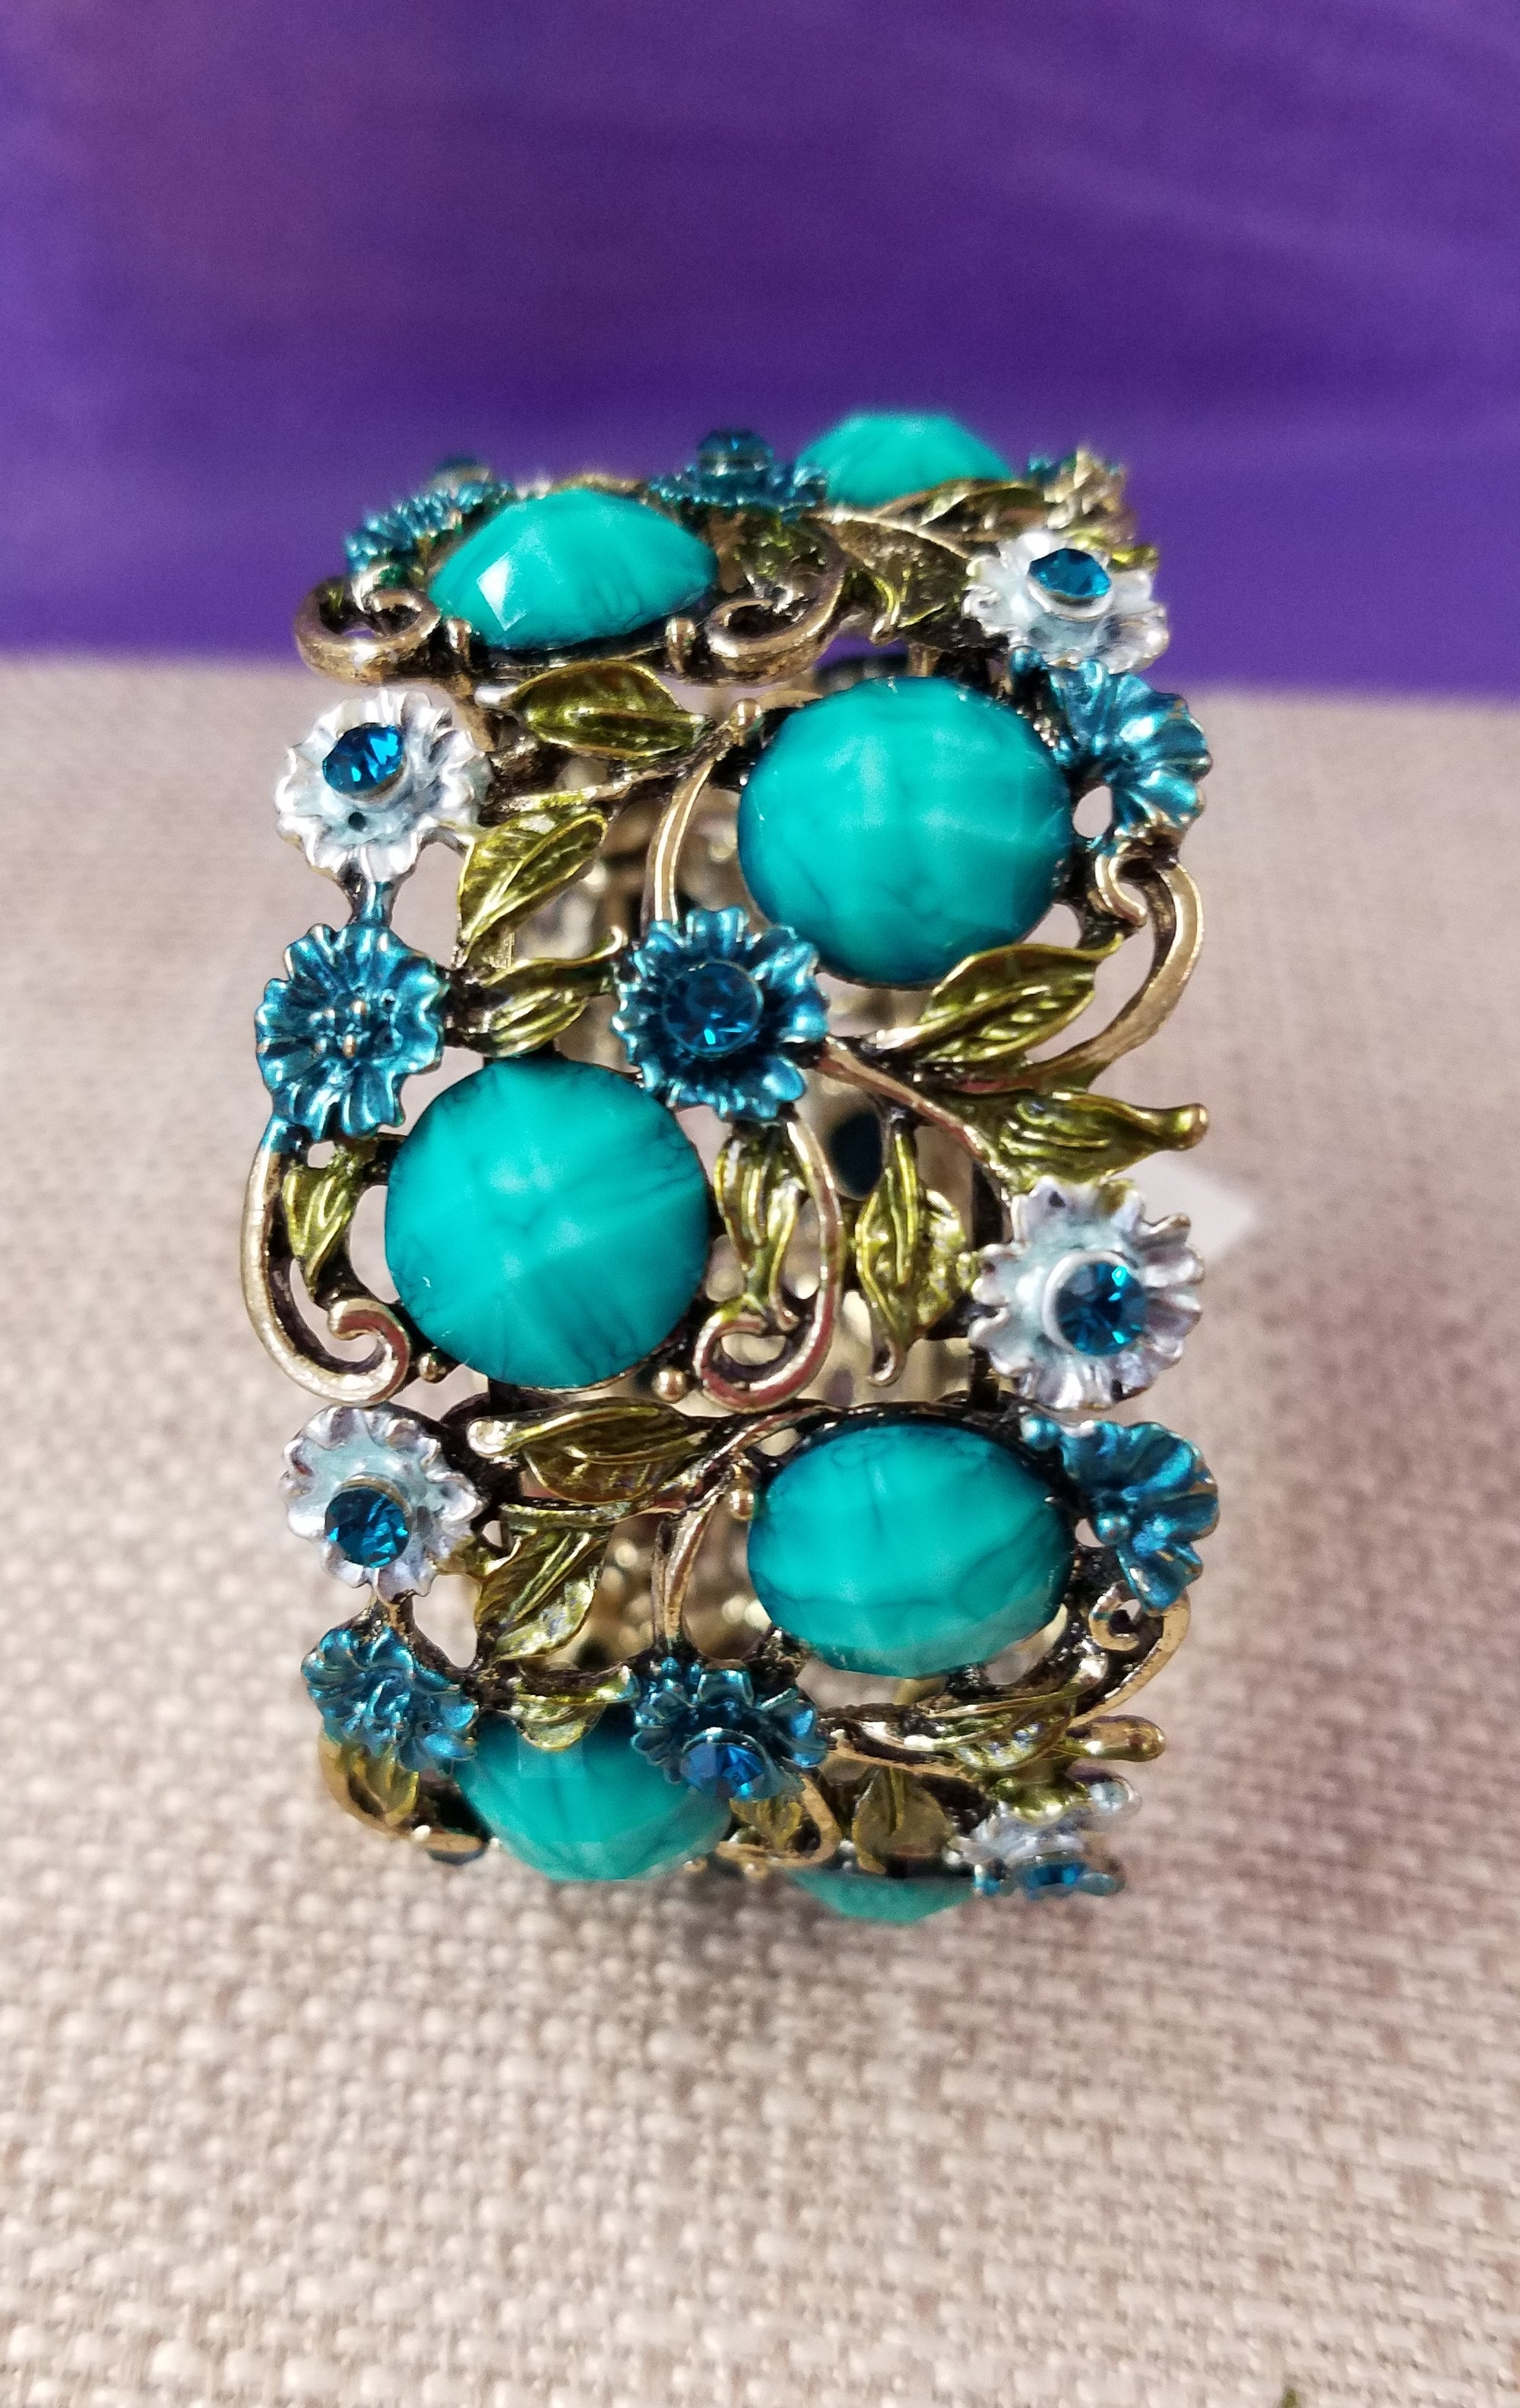 Gorgeous Bracelet in Turquoise with Rhinestones - You-nique Bou-tique